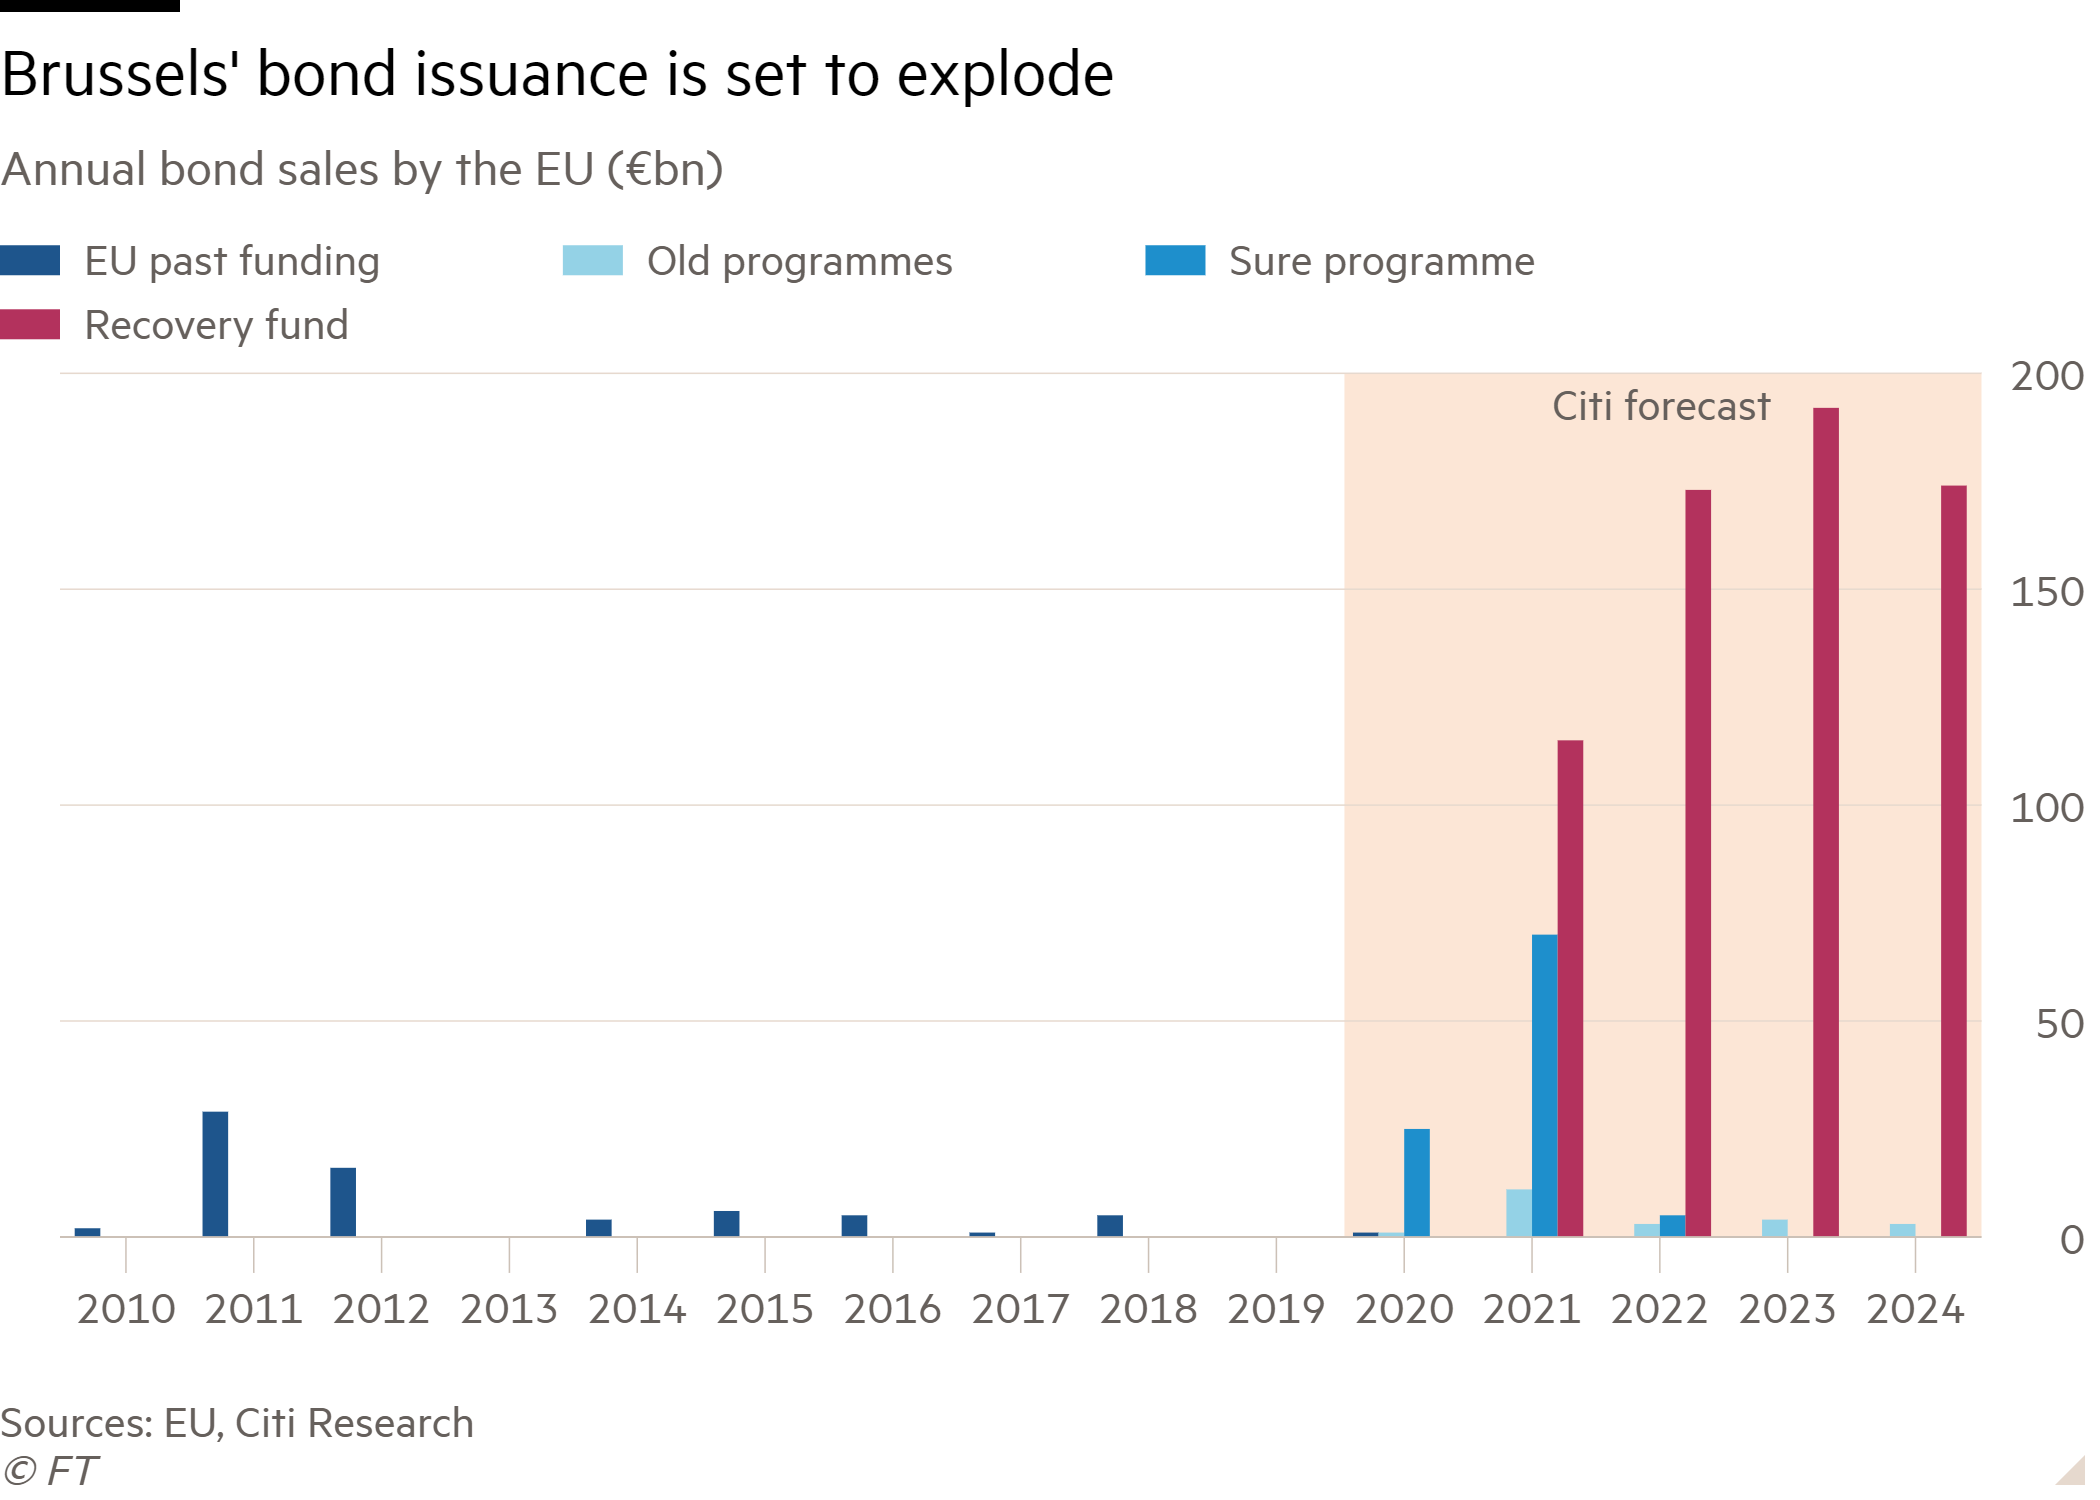 Chart showing the EU's  bond issuance over the years